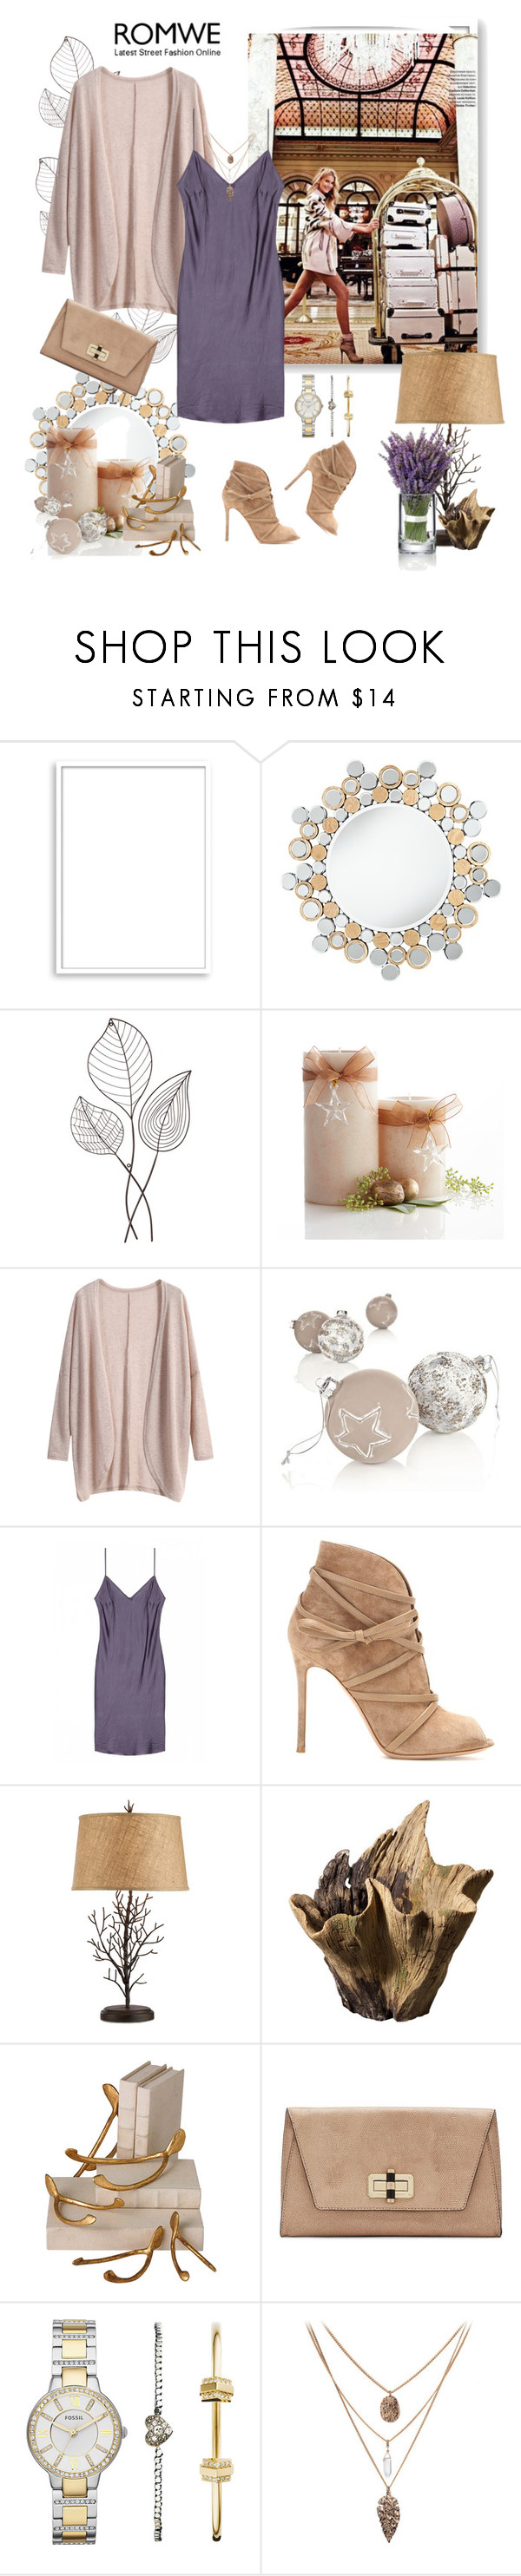 """""""Slip Dress"""" by murenochek ❤ liked on Polyvore featuring Bomedo, Universal Lighting and Decor, Pier 1 Imports, Gianvito Rossi, Global Views, Diane Von Furstenberg, FOSSIL, women's clothing, women's fashion and women"""